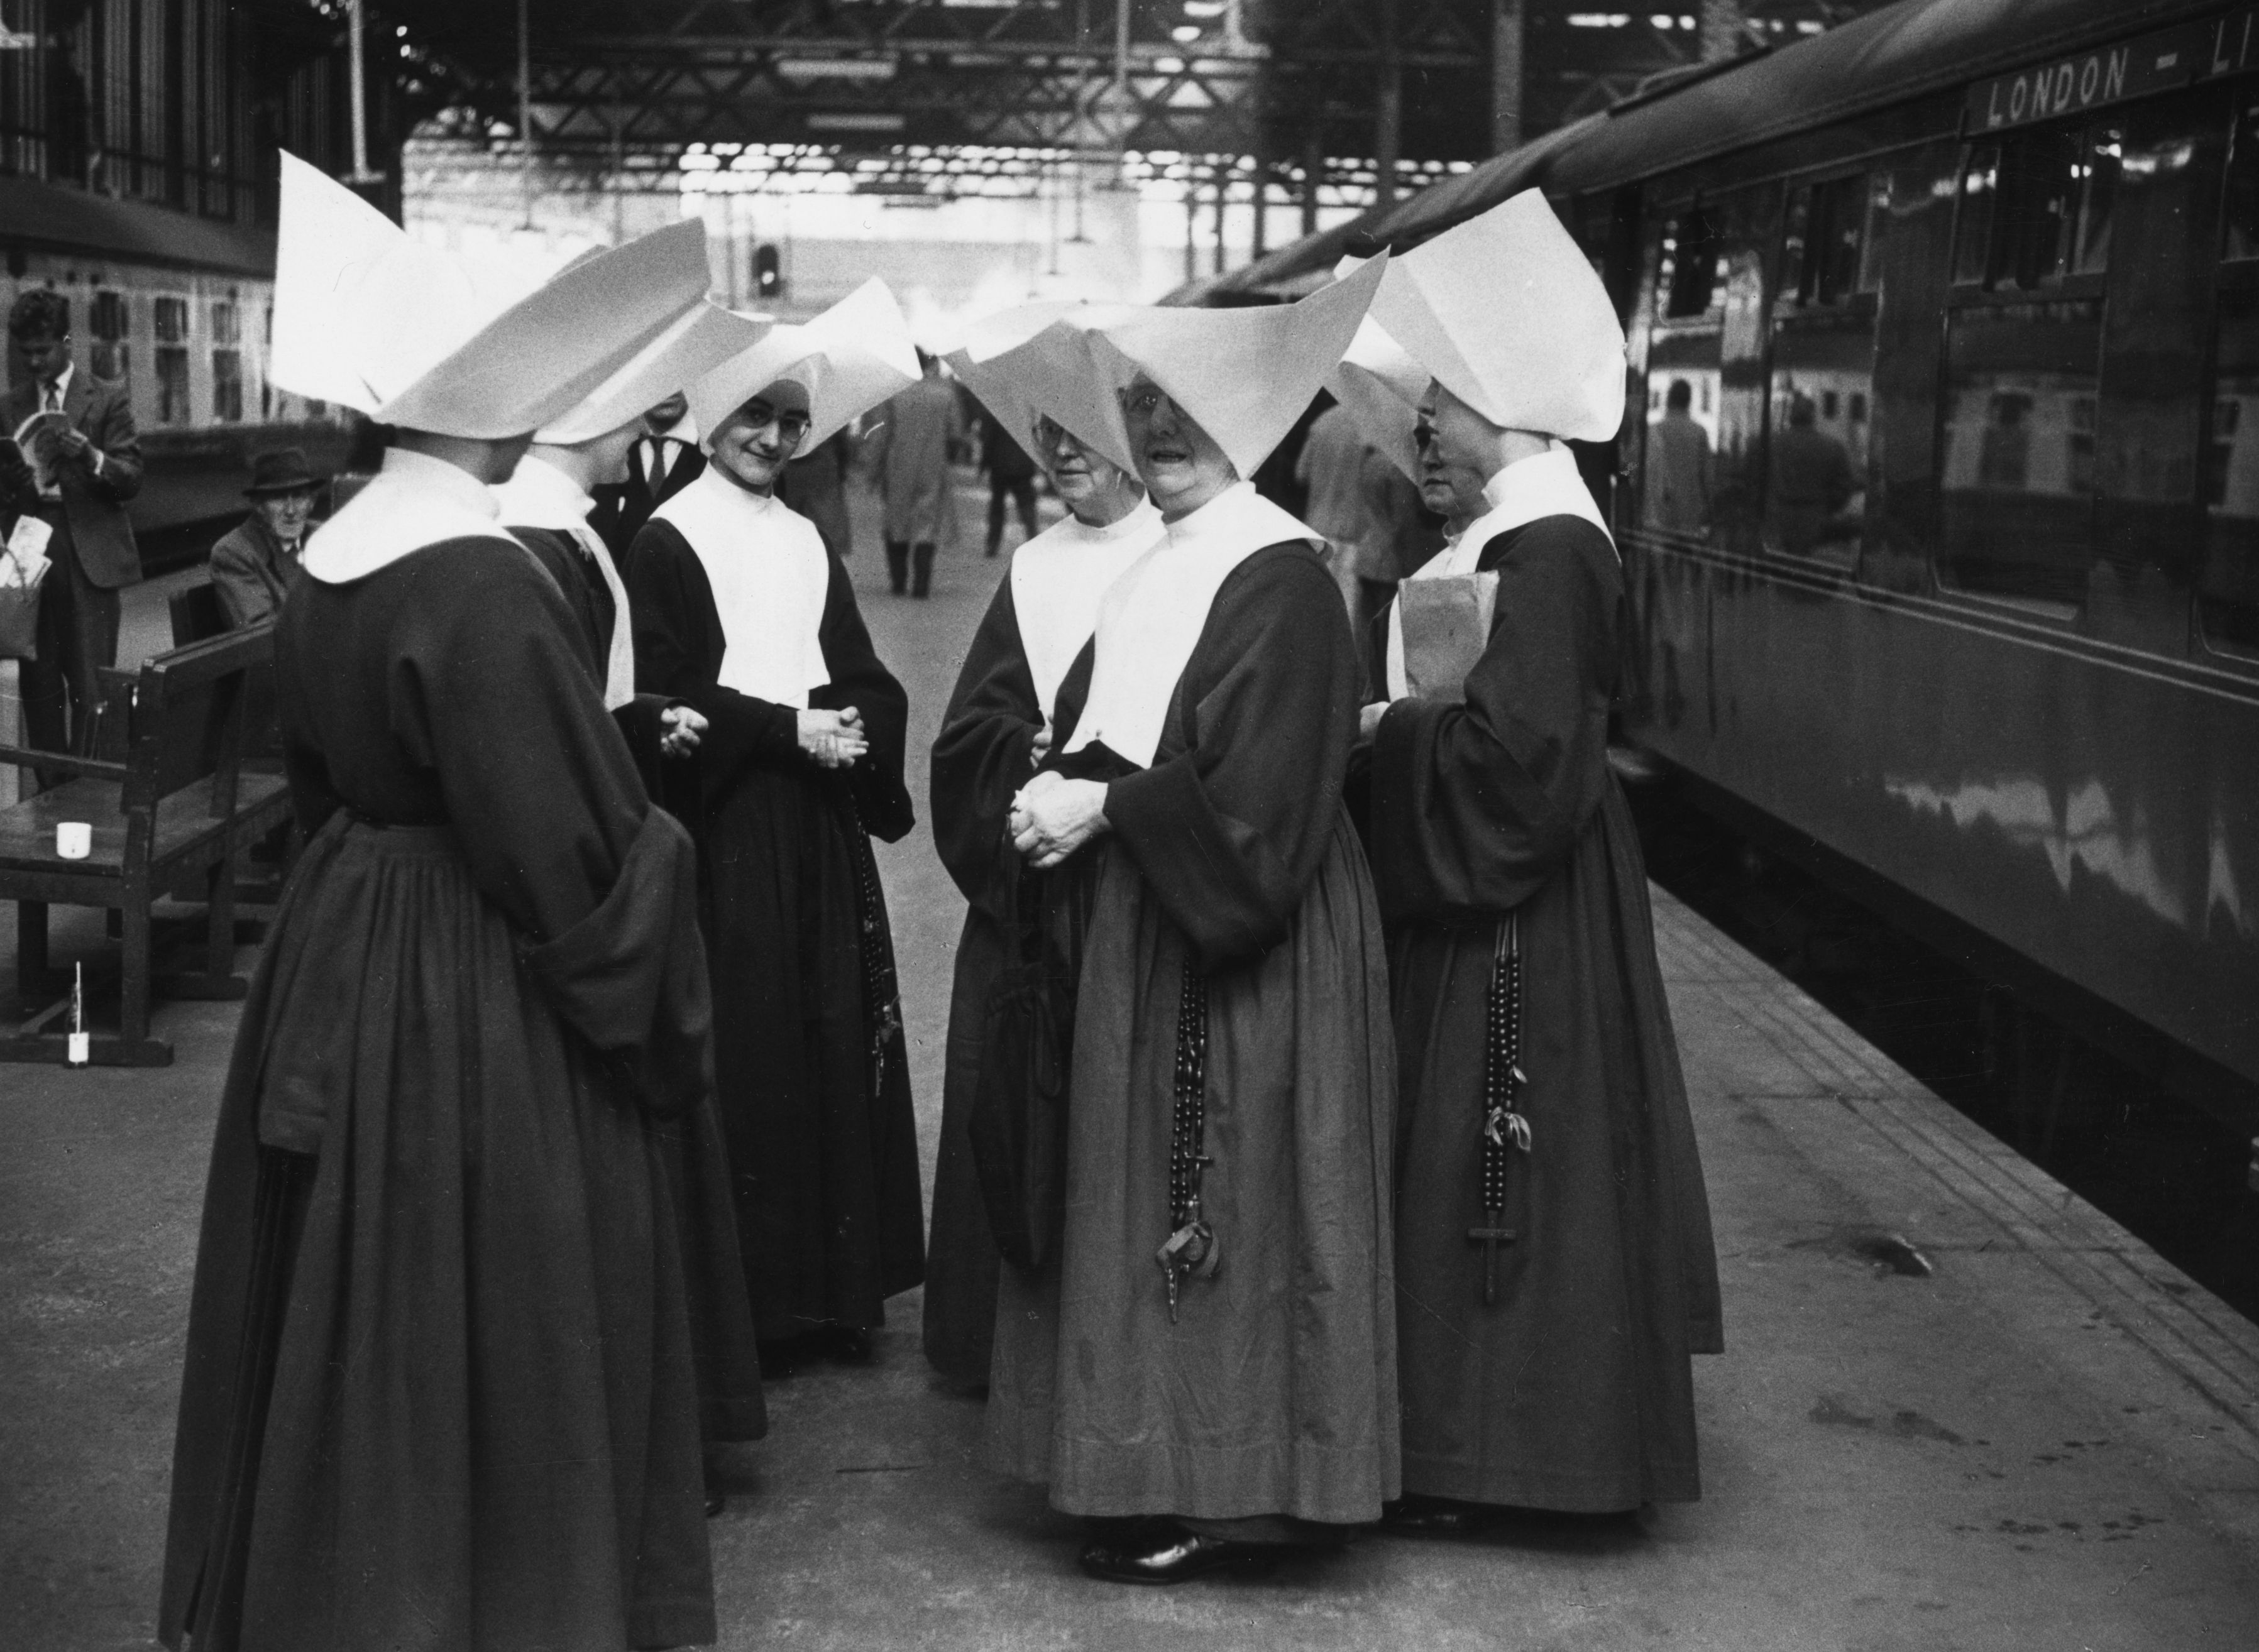 Nuns wait together on a platform at Euston station in London.